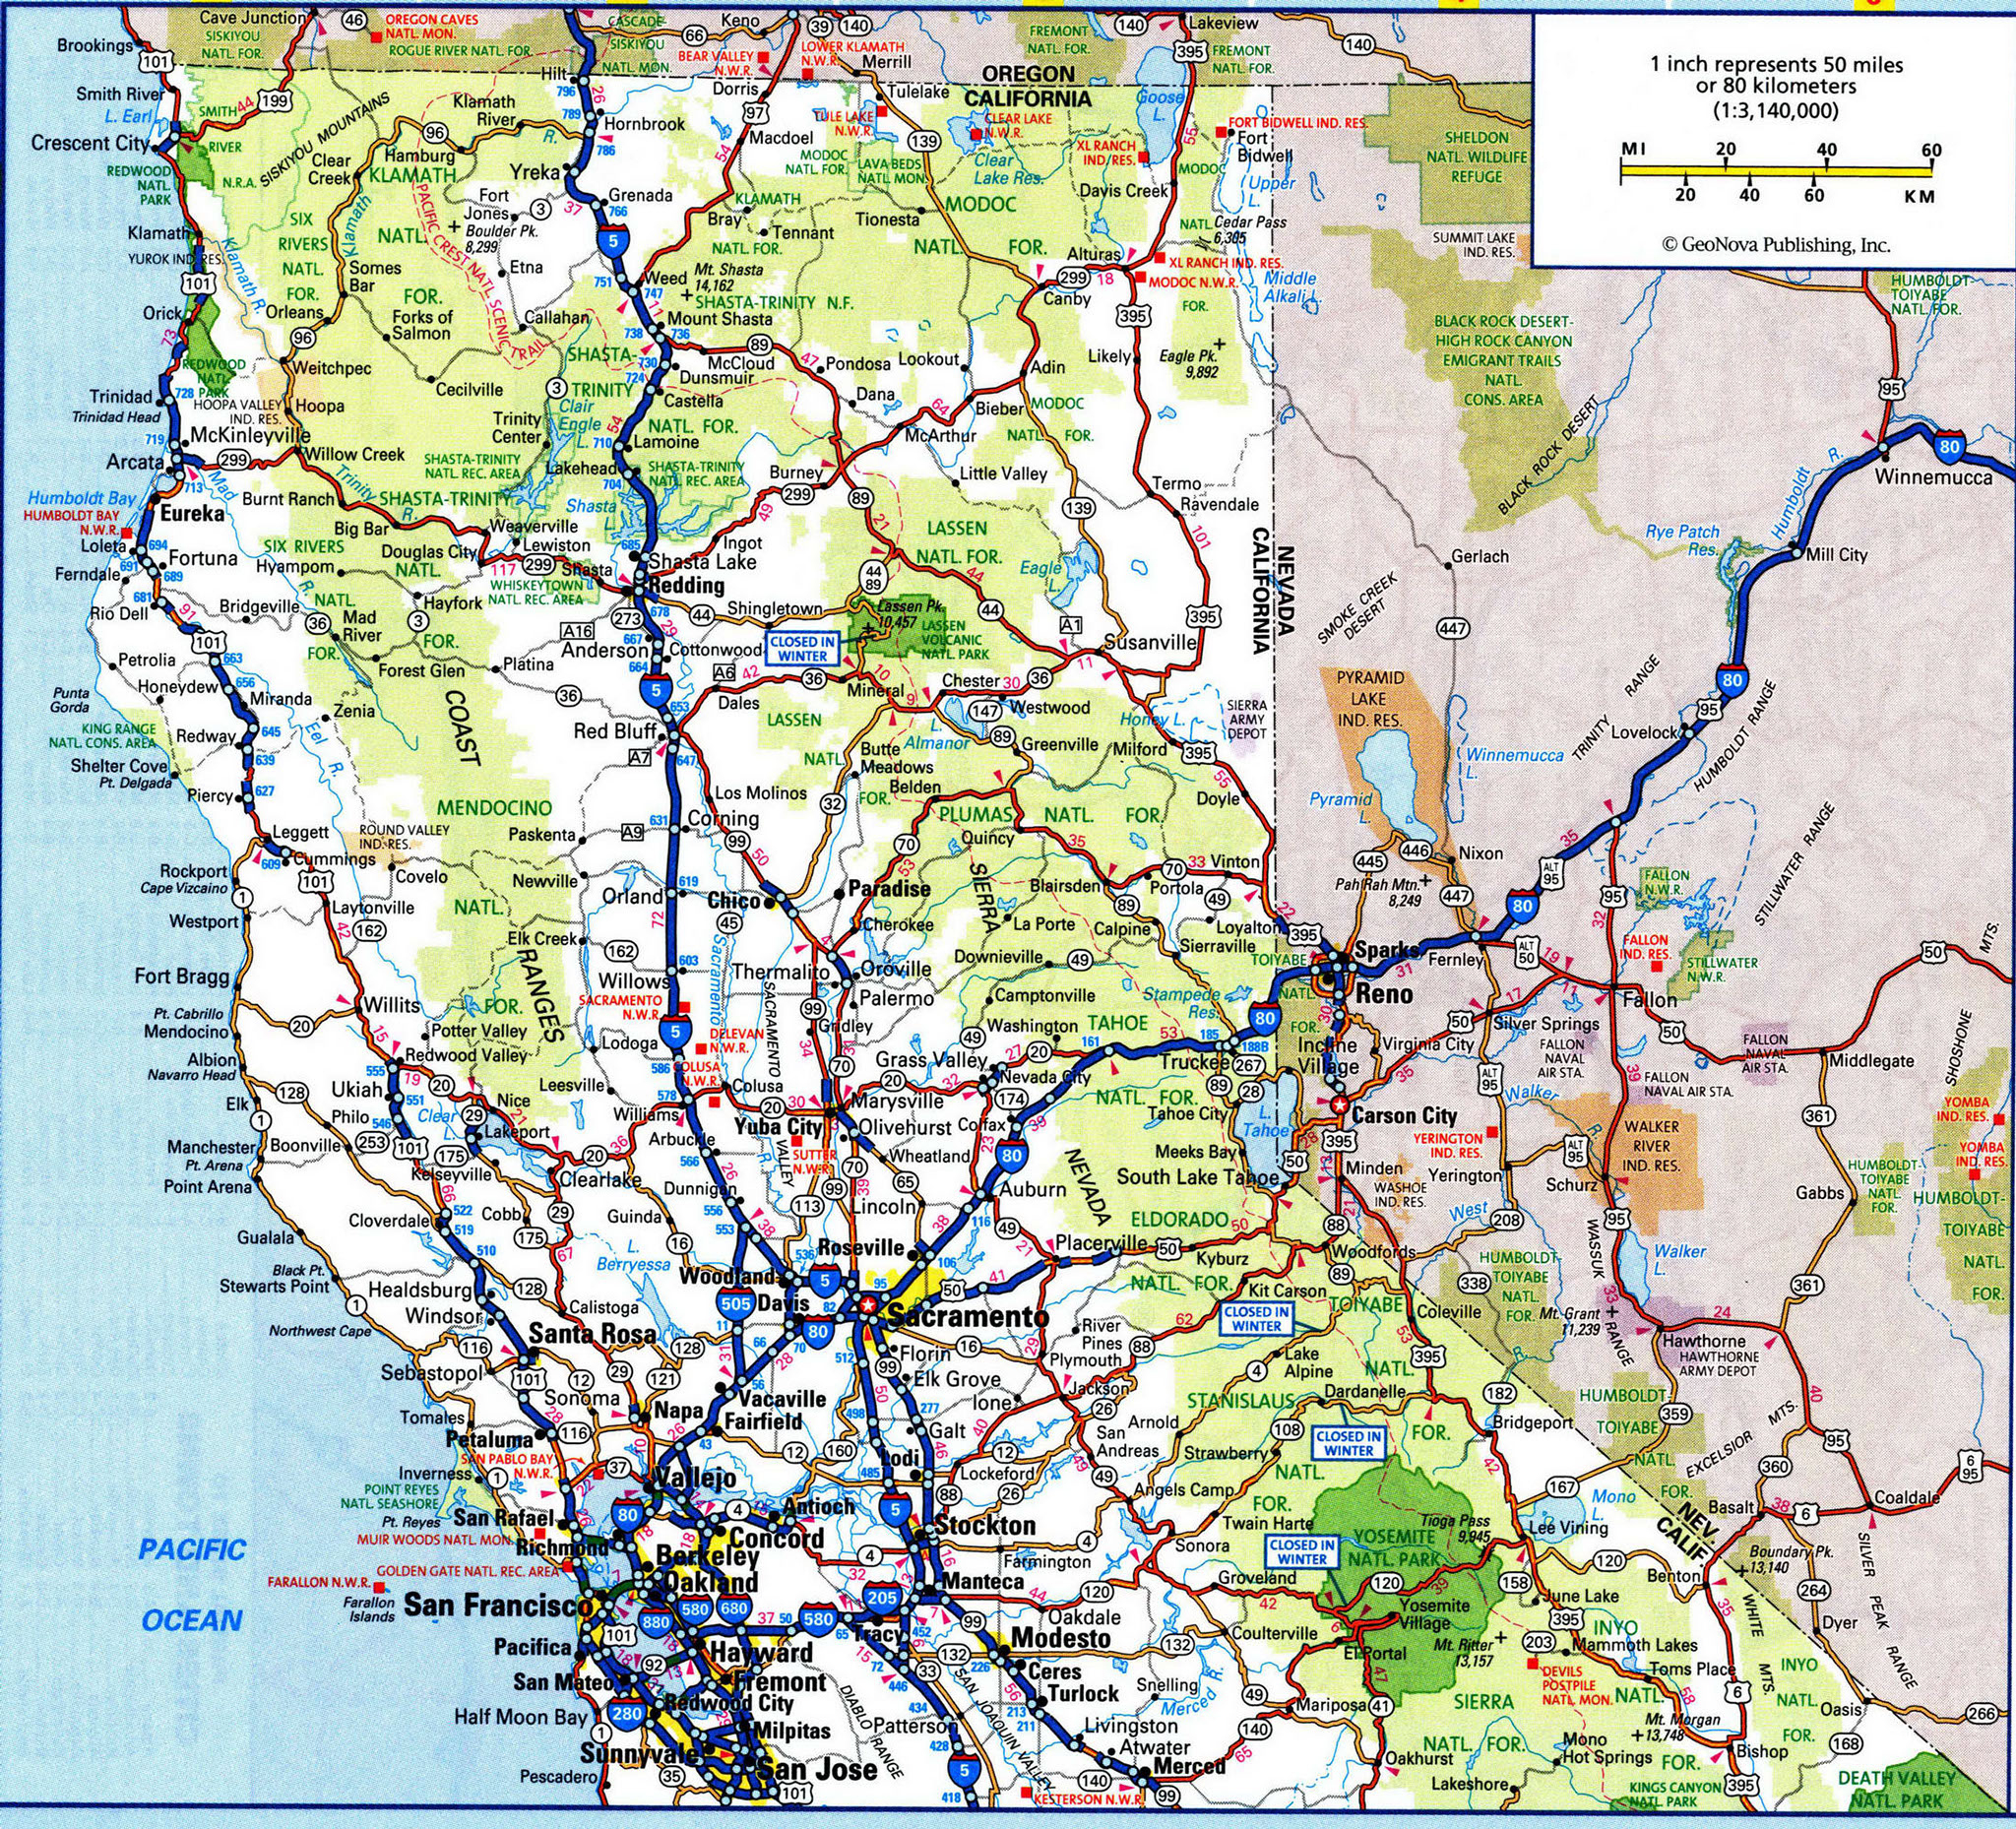 Northern Cal Map And Travel Information | Download Free Northern Cal Map - Map Of Northern California Coast